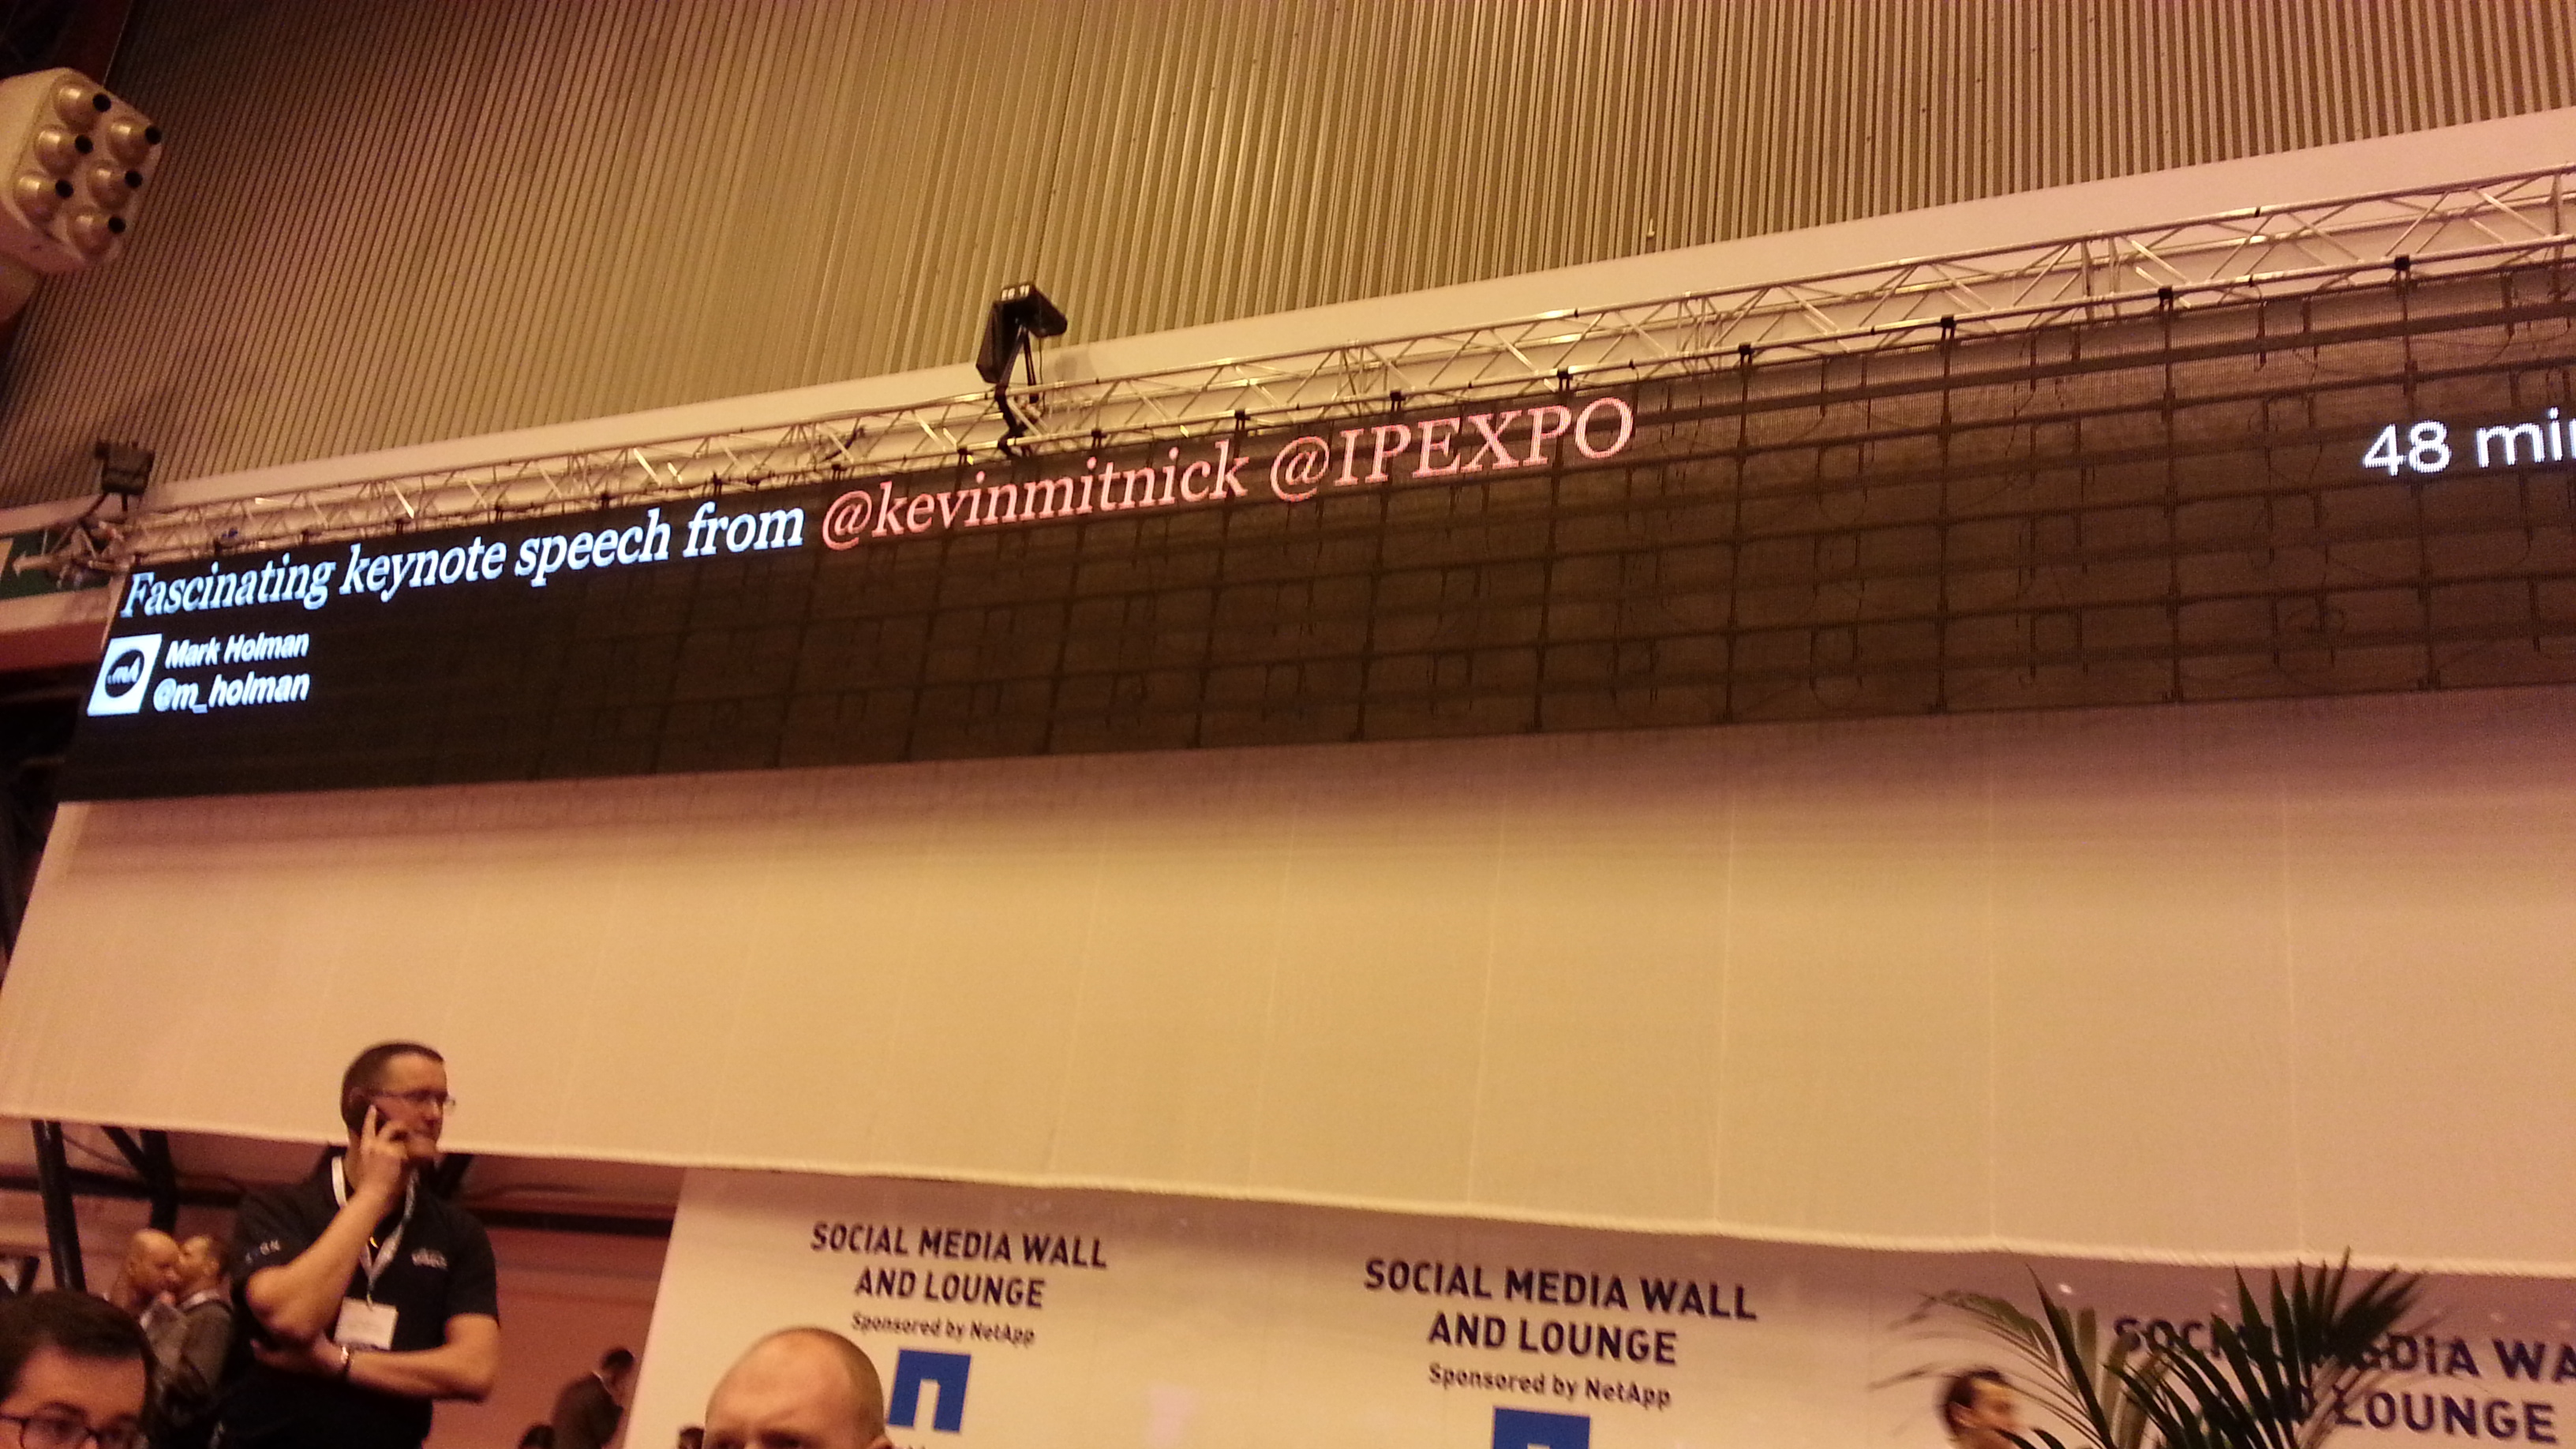 IP EXPO 2013 London twitter wall